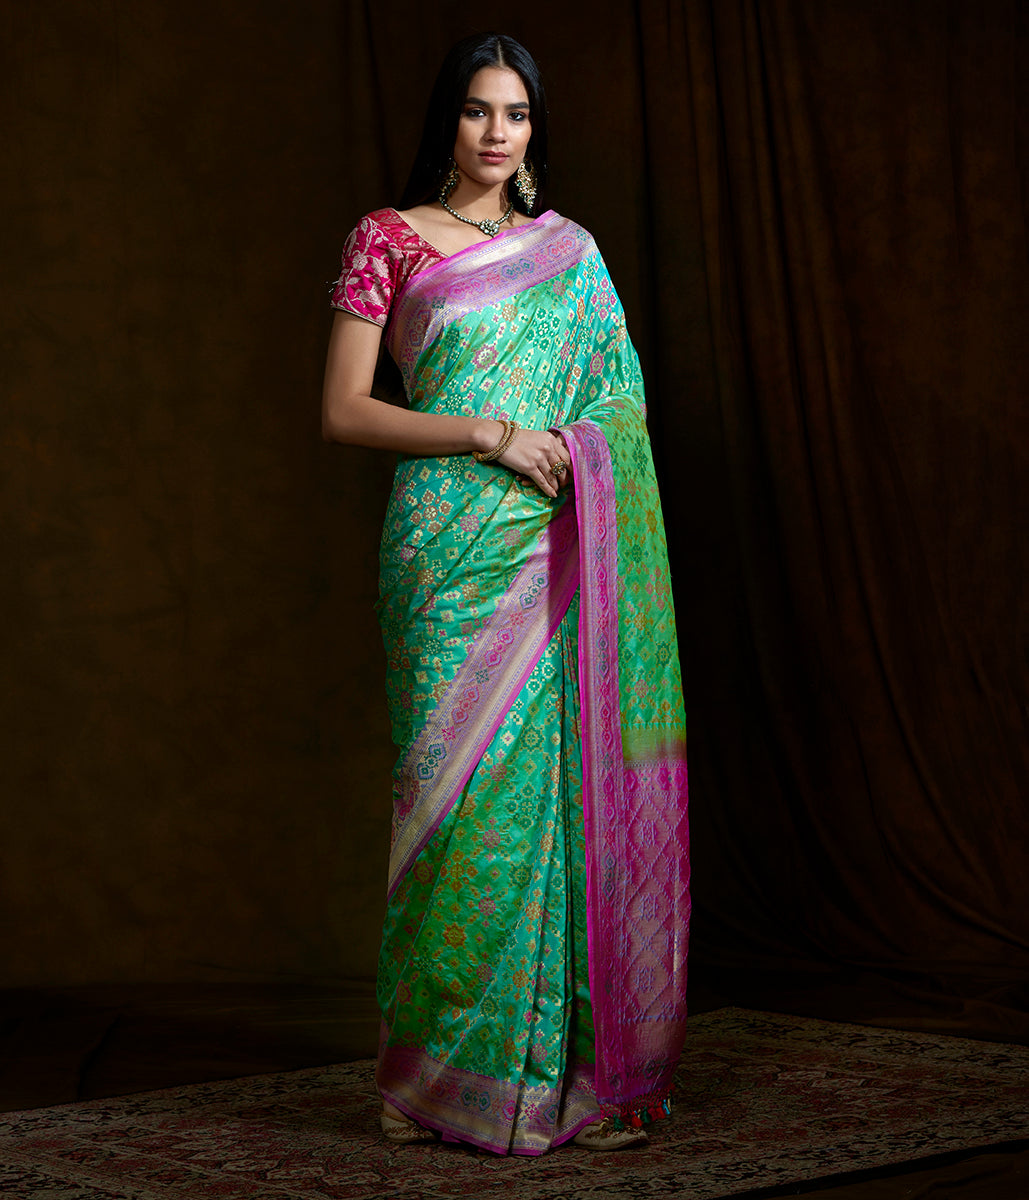 Handwoven Banarasi Patola saree in Green with a mauve border and pallu